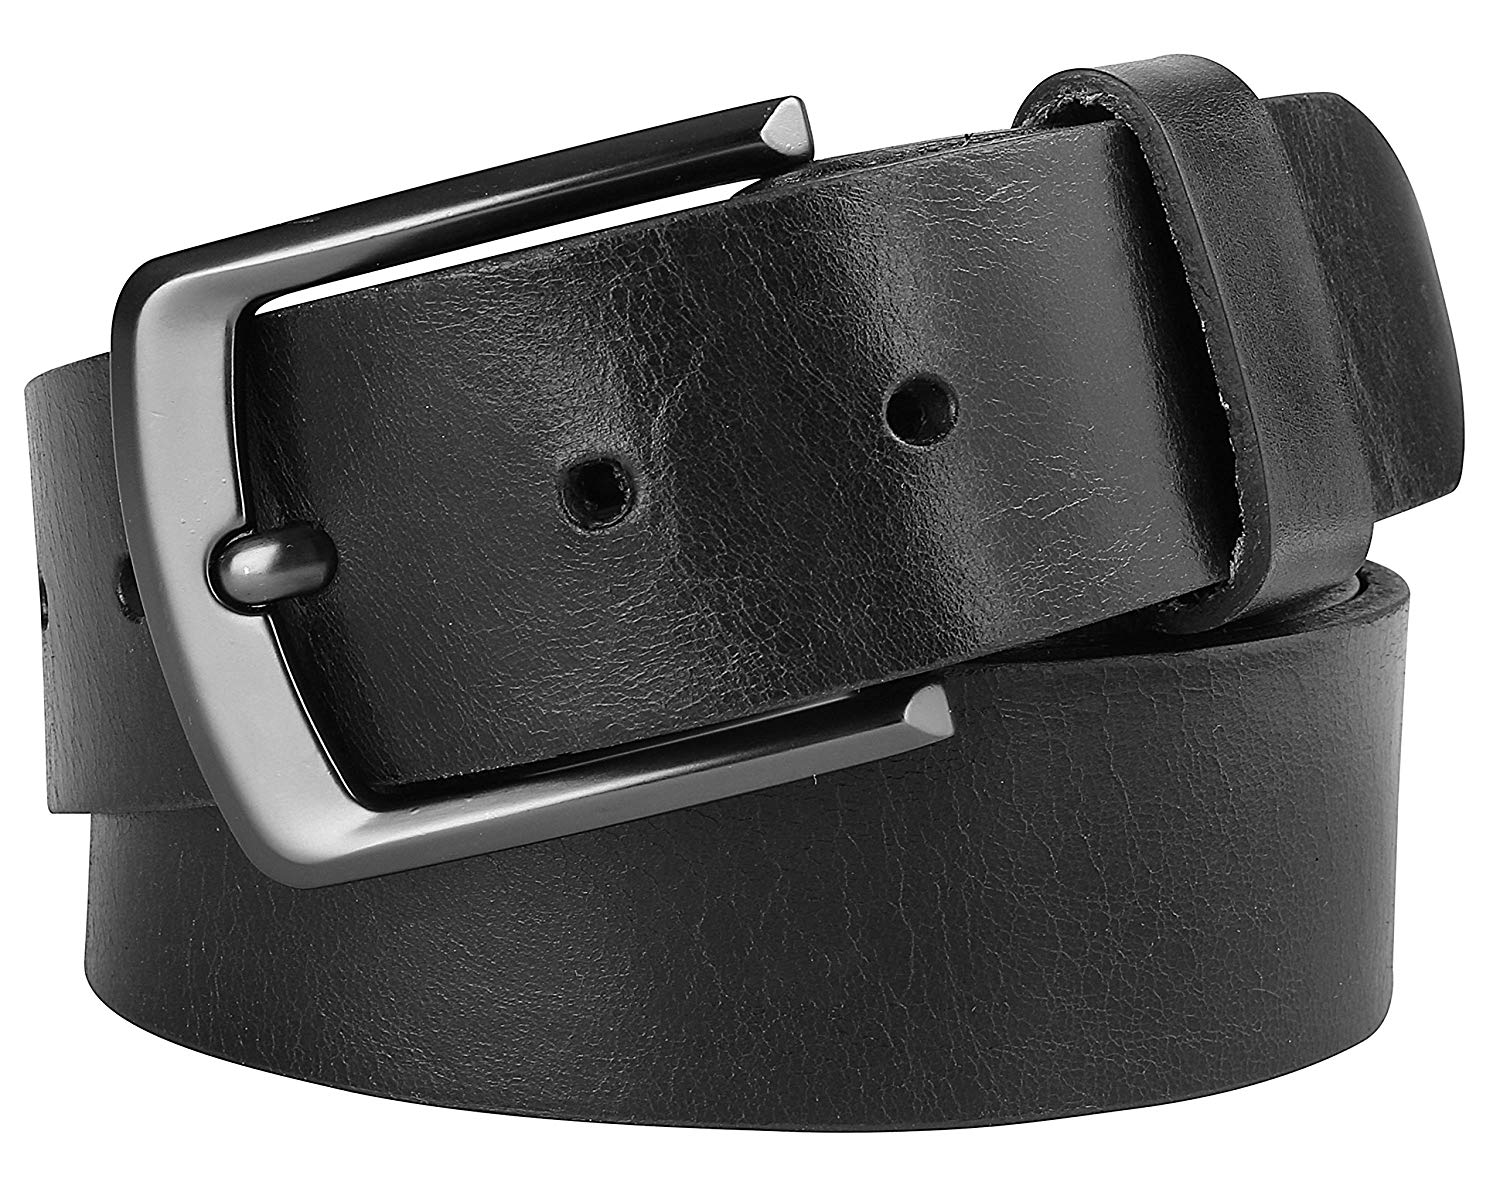 "Men's Full Grain One Piece leather belt w/Snaps for Interchangeable Buckles,1.50"" Wide, USA"